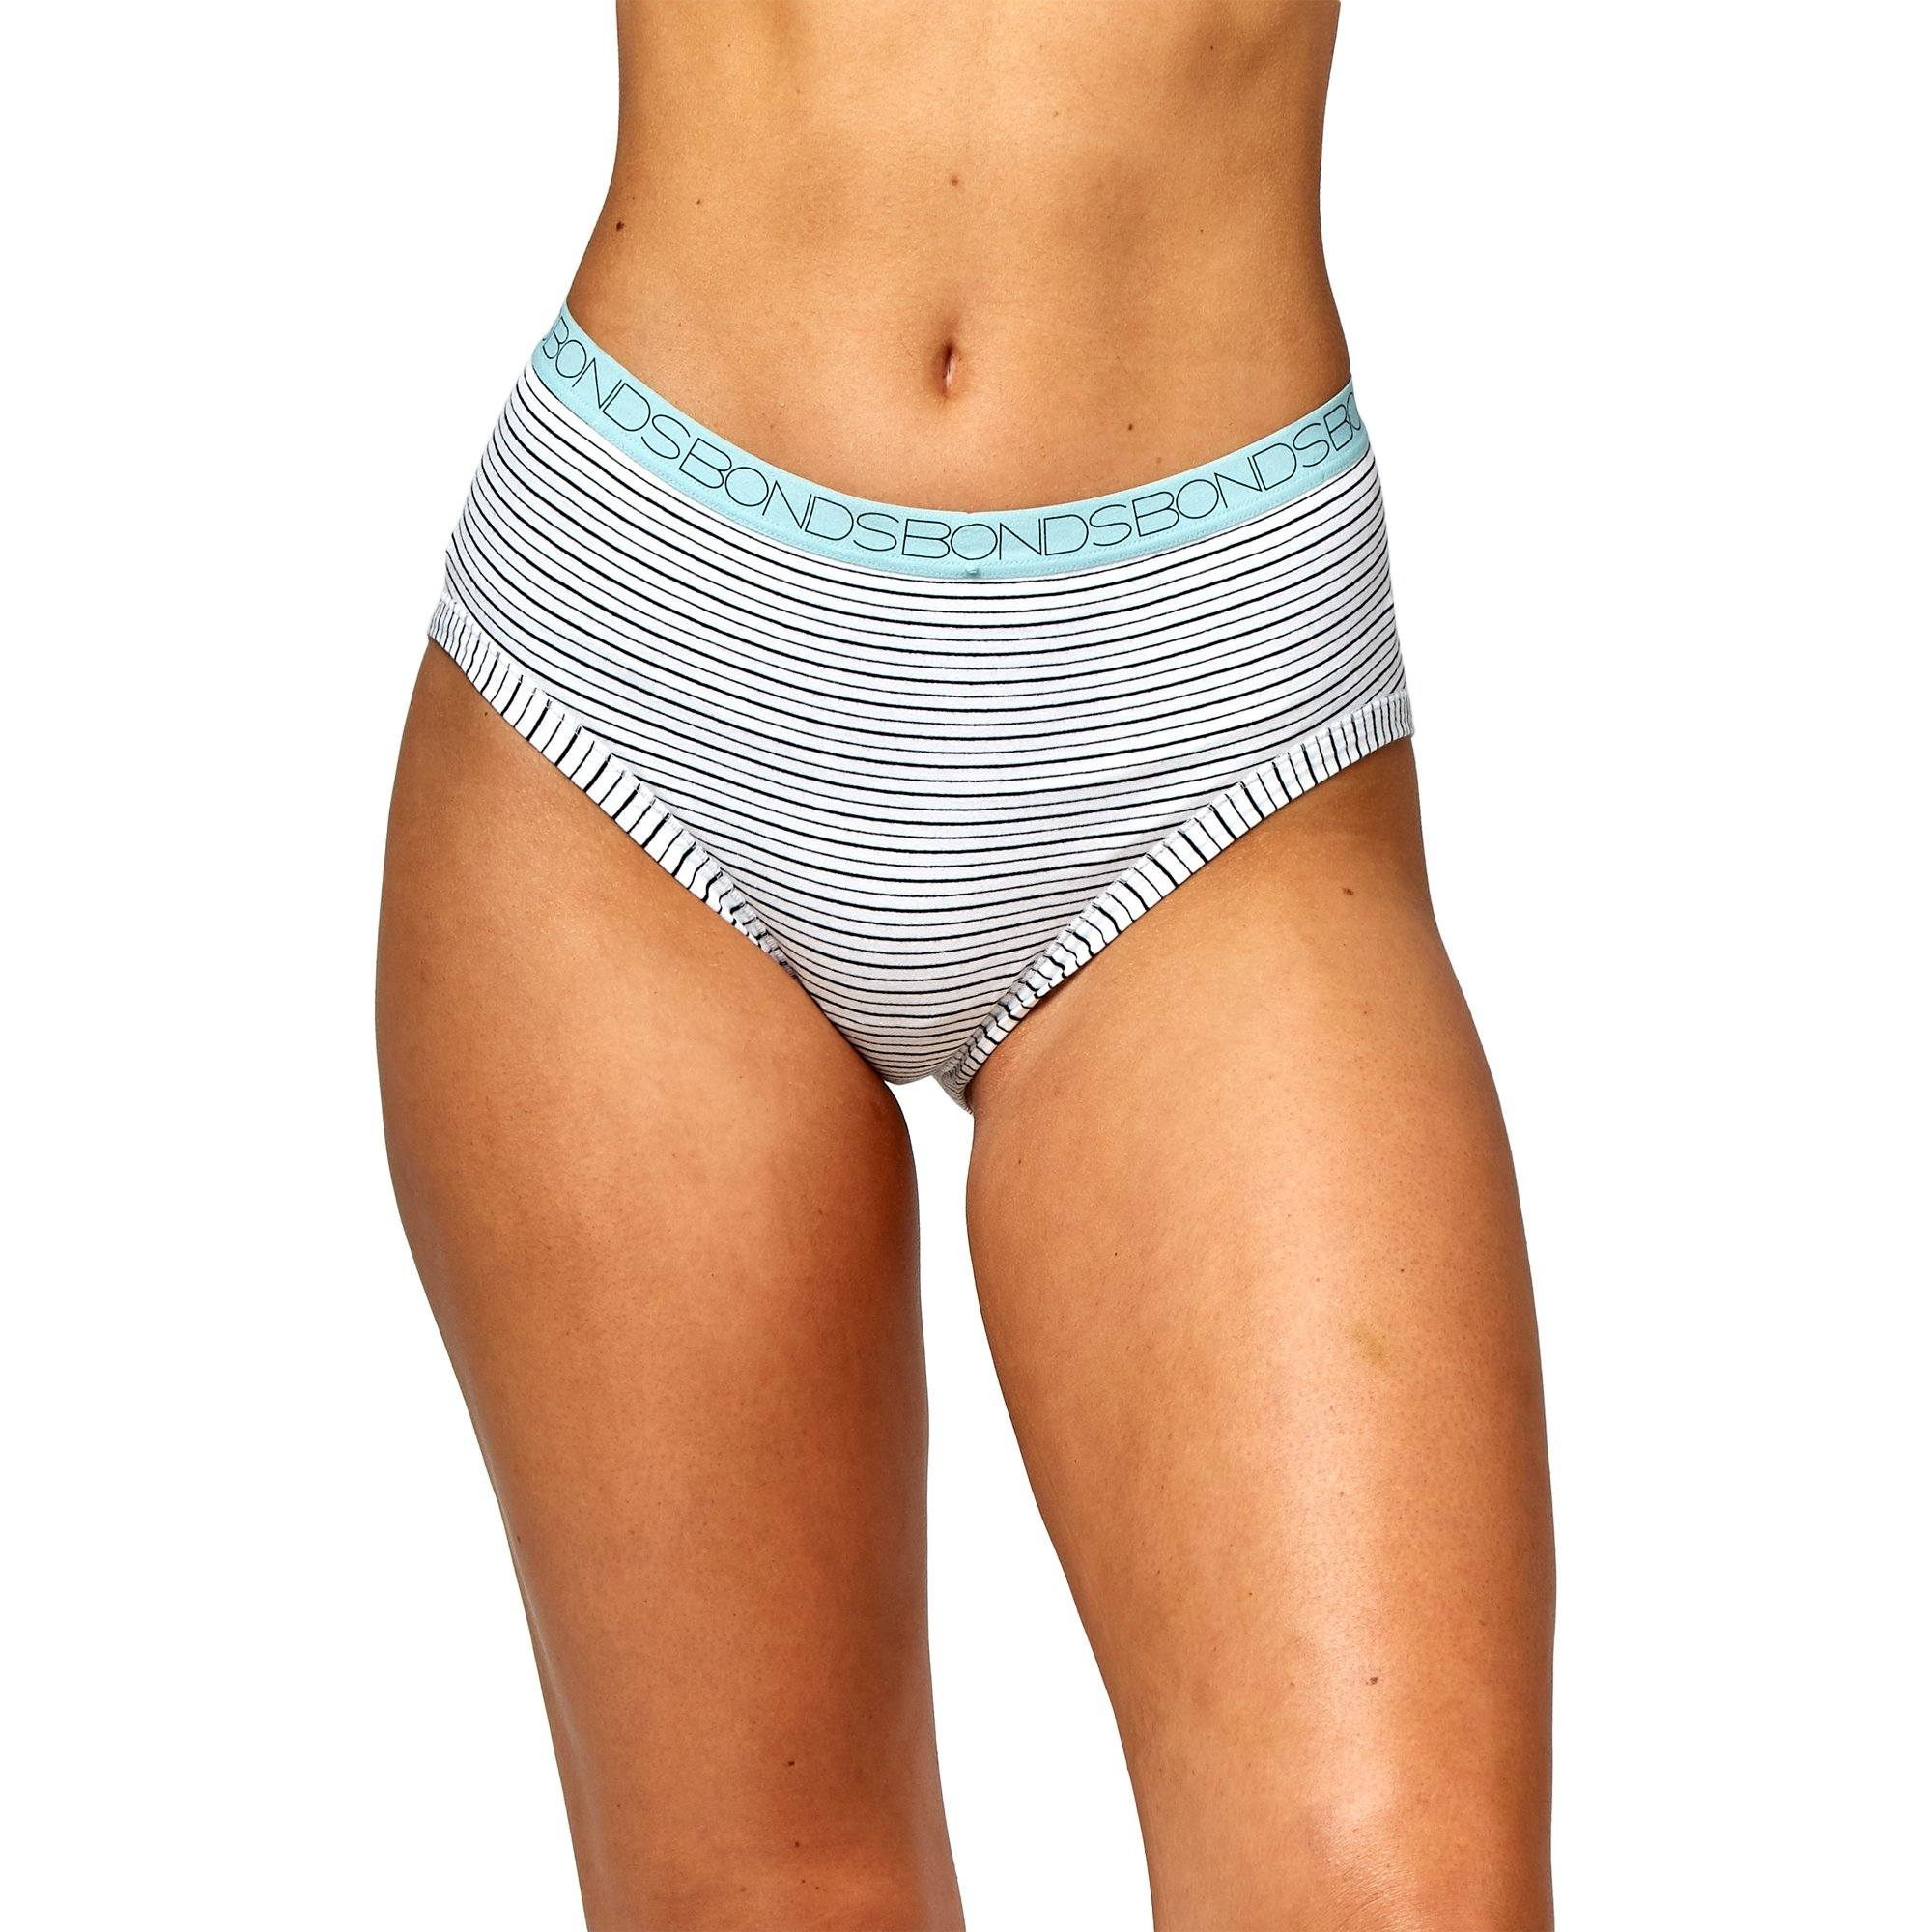 Bonds Women'S Underwear Cottontails Yds Midi - Stripe 30 Women's Underwear Bonds